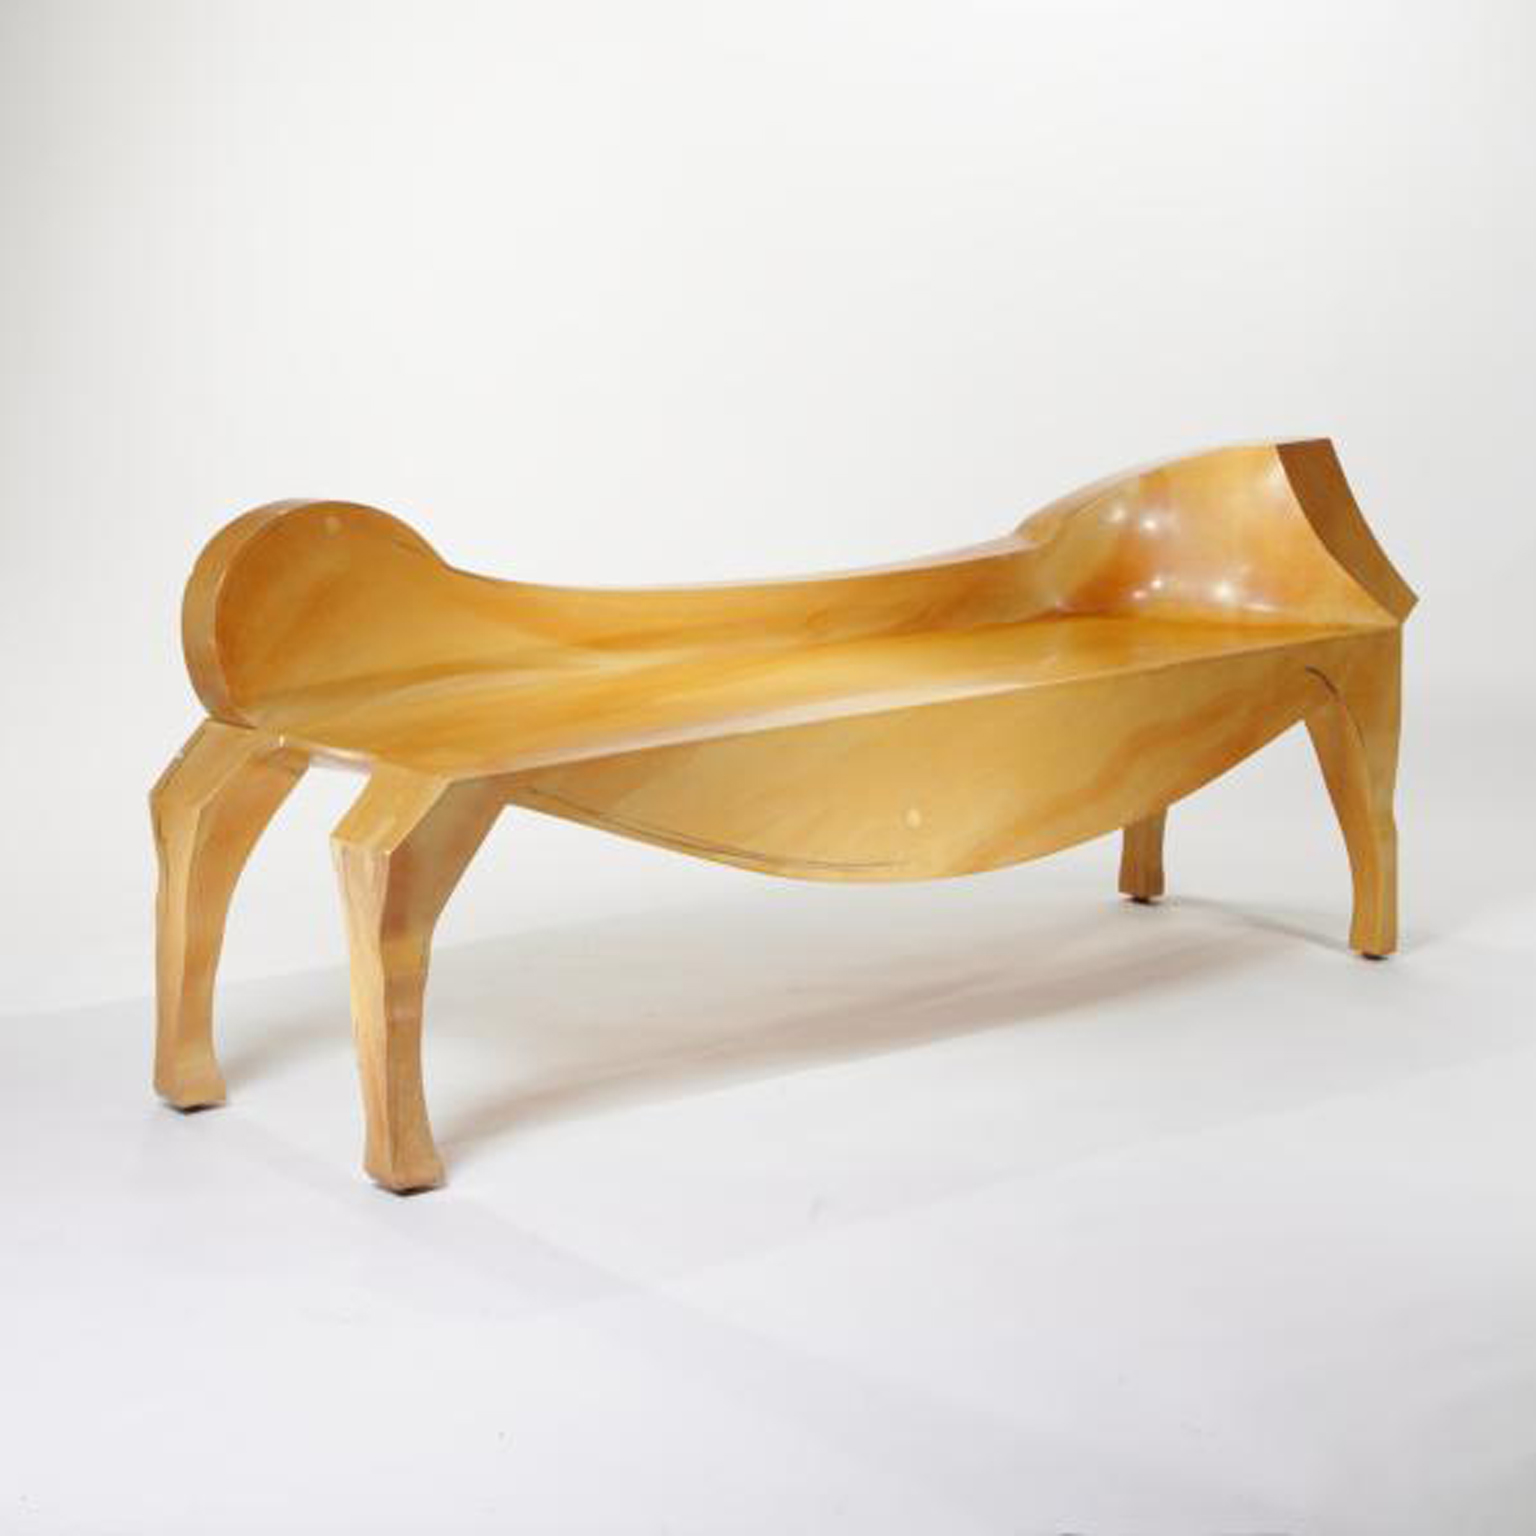 Furniture: 40 Years Of Designing And Building. U0027